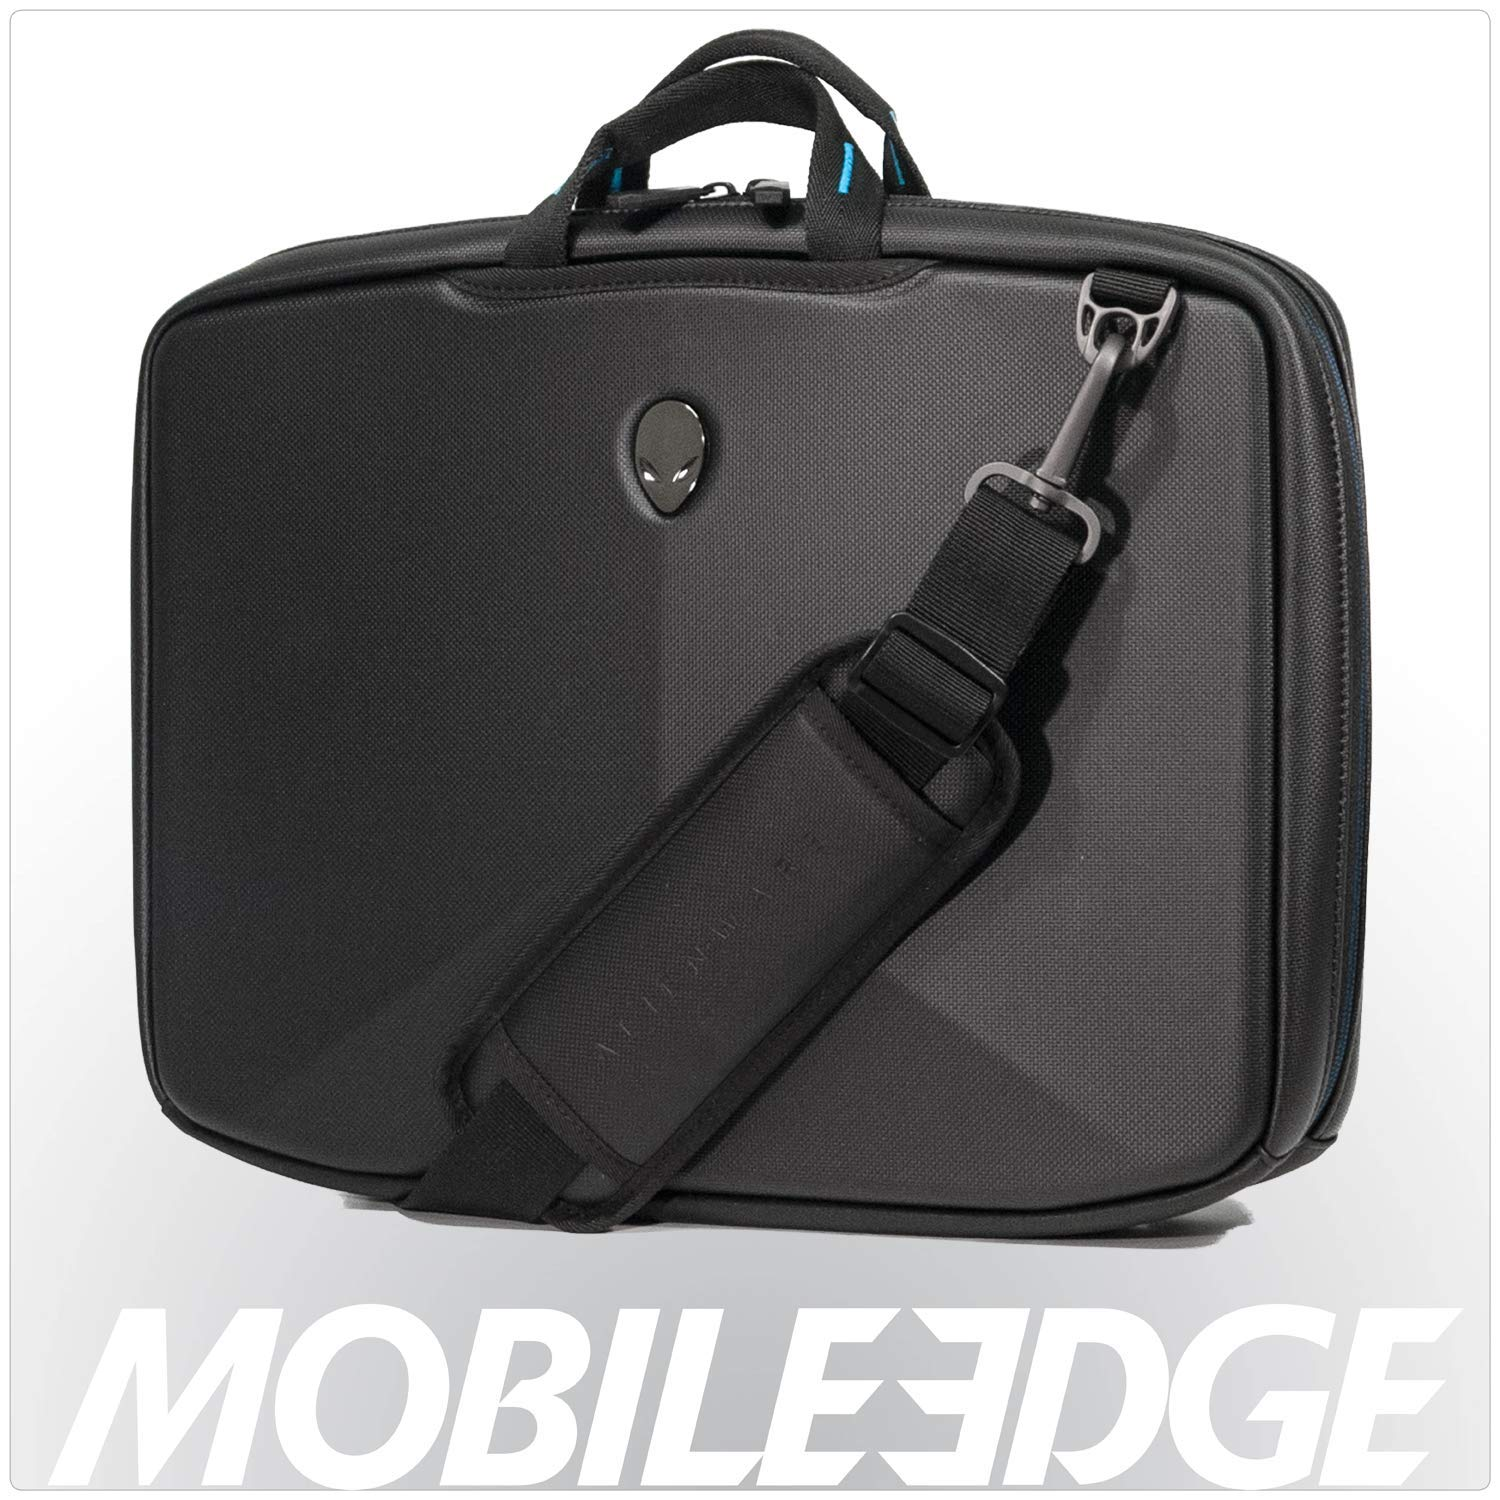 Mobile Edge Alienware Vindicator 2.0 Black Slim Laptop Carrying Case, 15 Inch, AWV15SC2.0